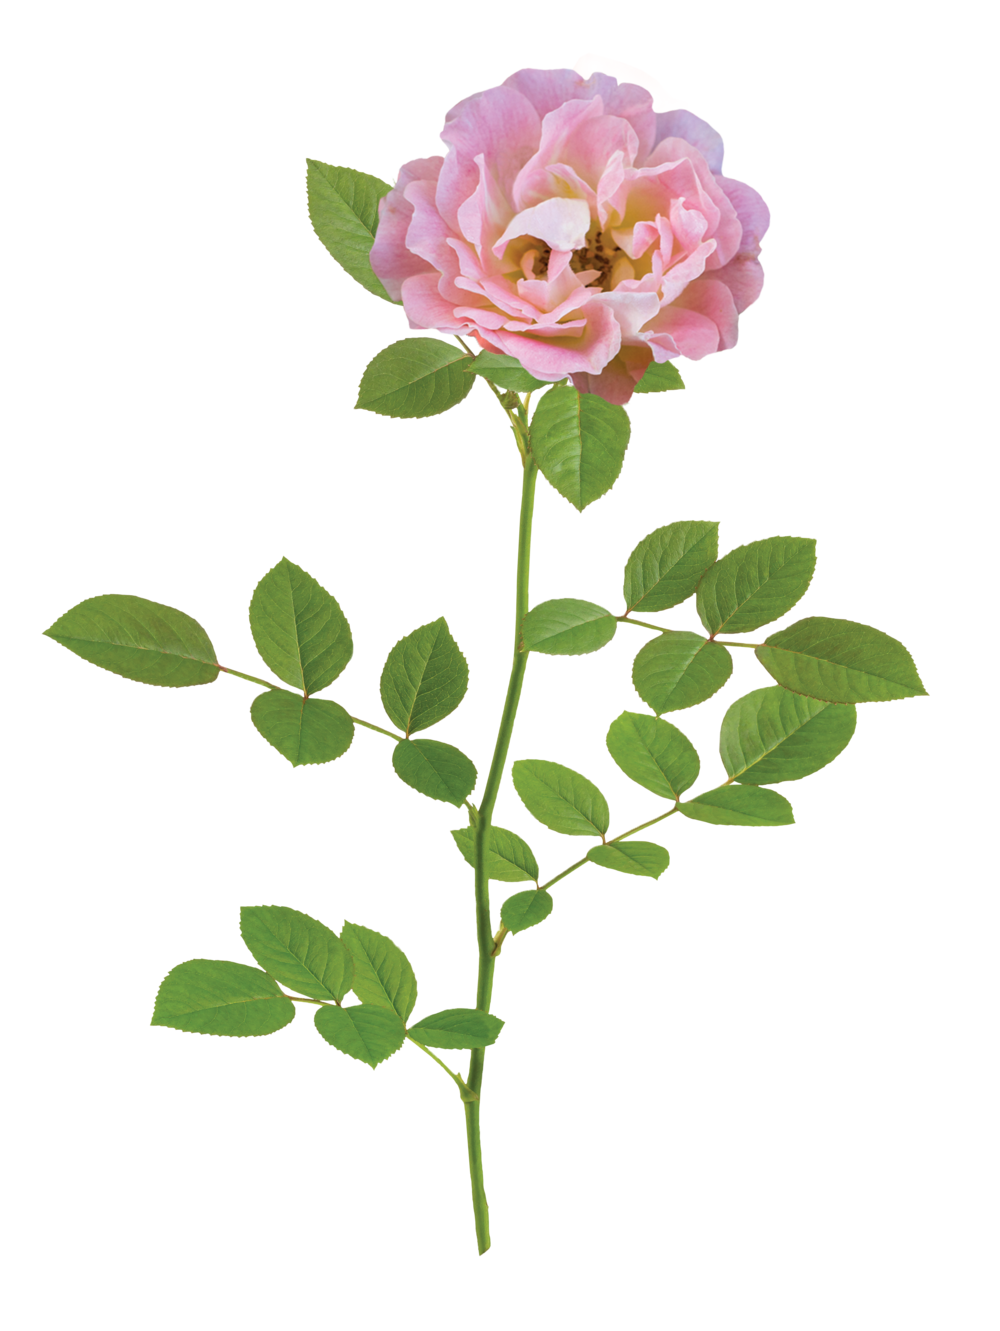 the Peach Drift® rose - 'Meiggili' PP 18,542The Peach Drift® Rose is one of the most floriferous dwarf shrubs available. Soft peach blooms cover the plant from mid-spring to the first hard freeze of late fall. Peach Drift® Rose pairs well with existing perennials in any landscape. The mature plant is approximately 2' by 1½' and exhibits strong disease resistance. Zones: 4–11   |   Exposure: Full sun   |   Habit: 1½' h x 3' w